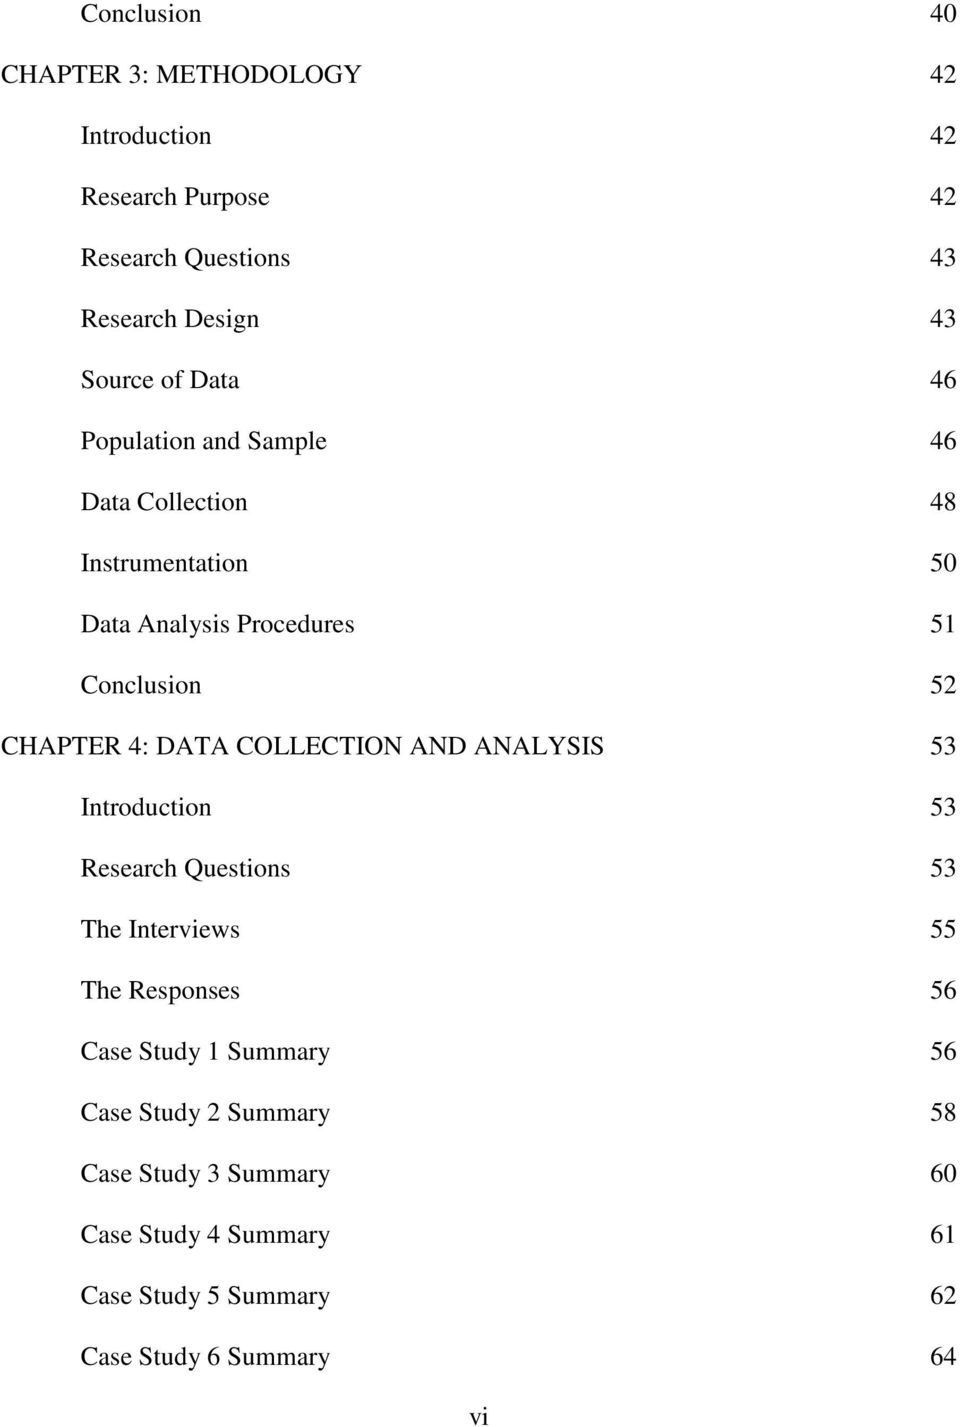 4: DATA COLLECTION AND ANALYSIS 53 Introduction 53 Research Questions 53 The Interviews 55 The Responses 56 Case Study 1